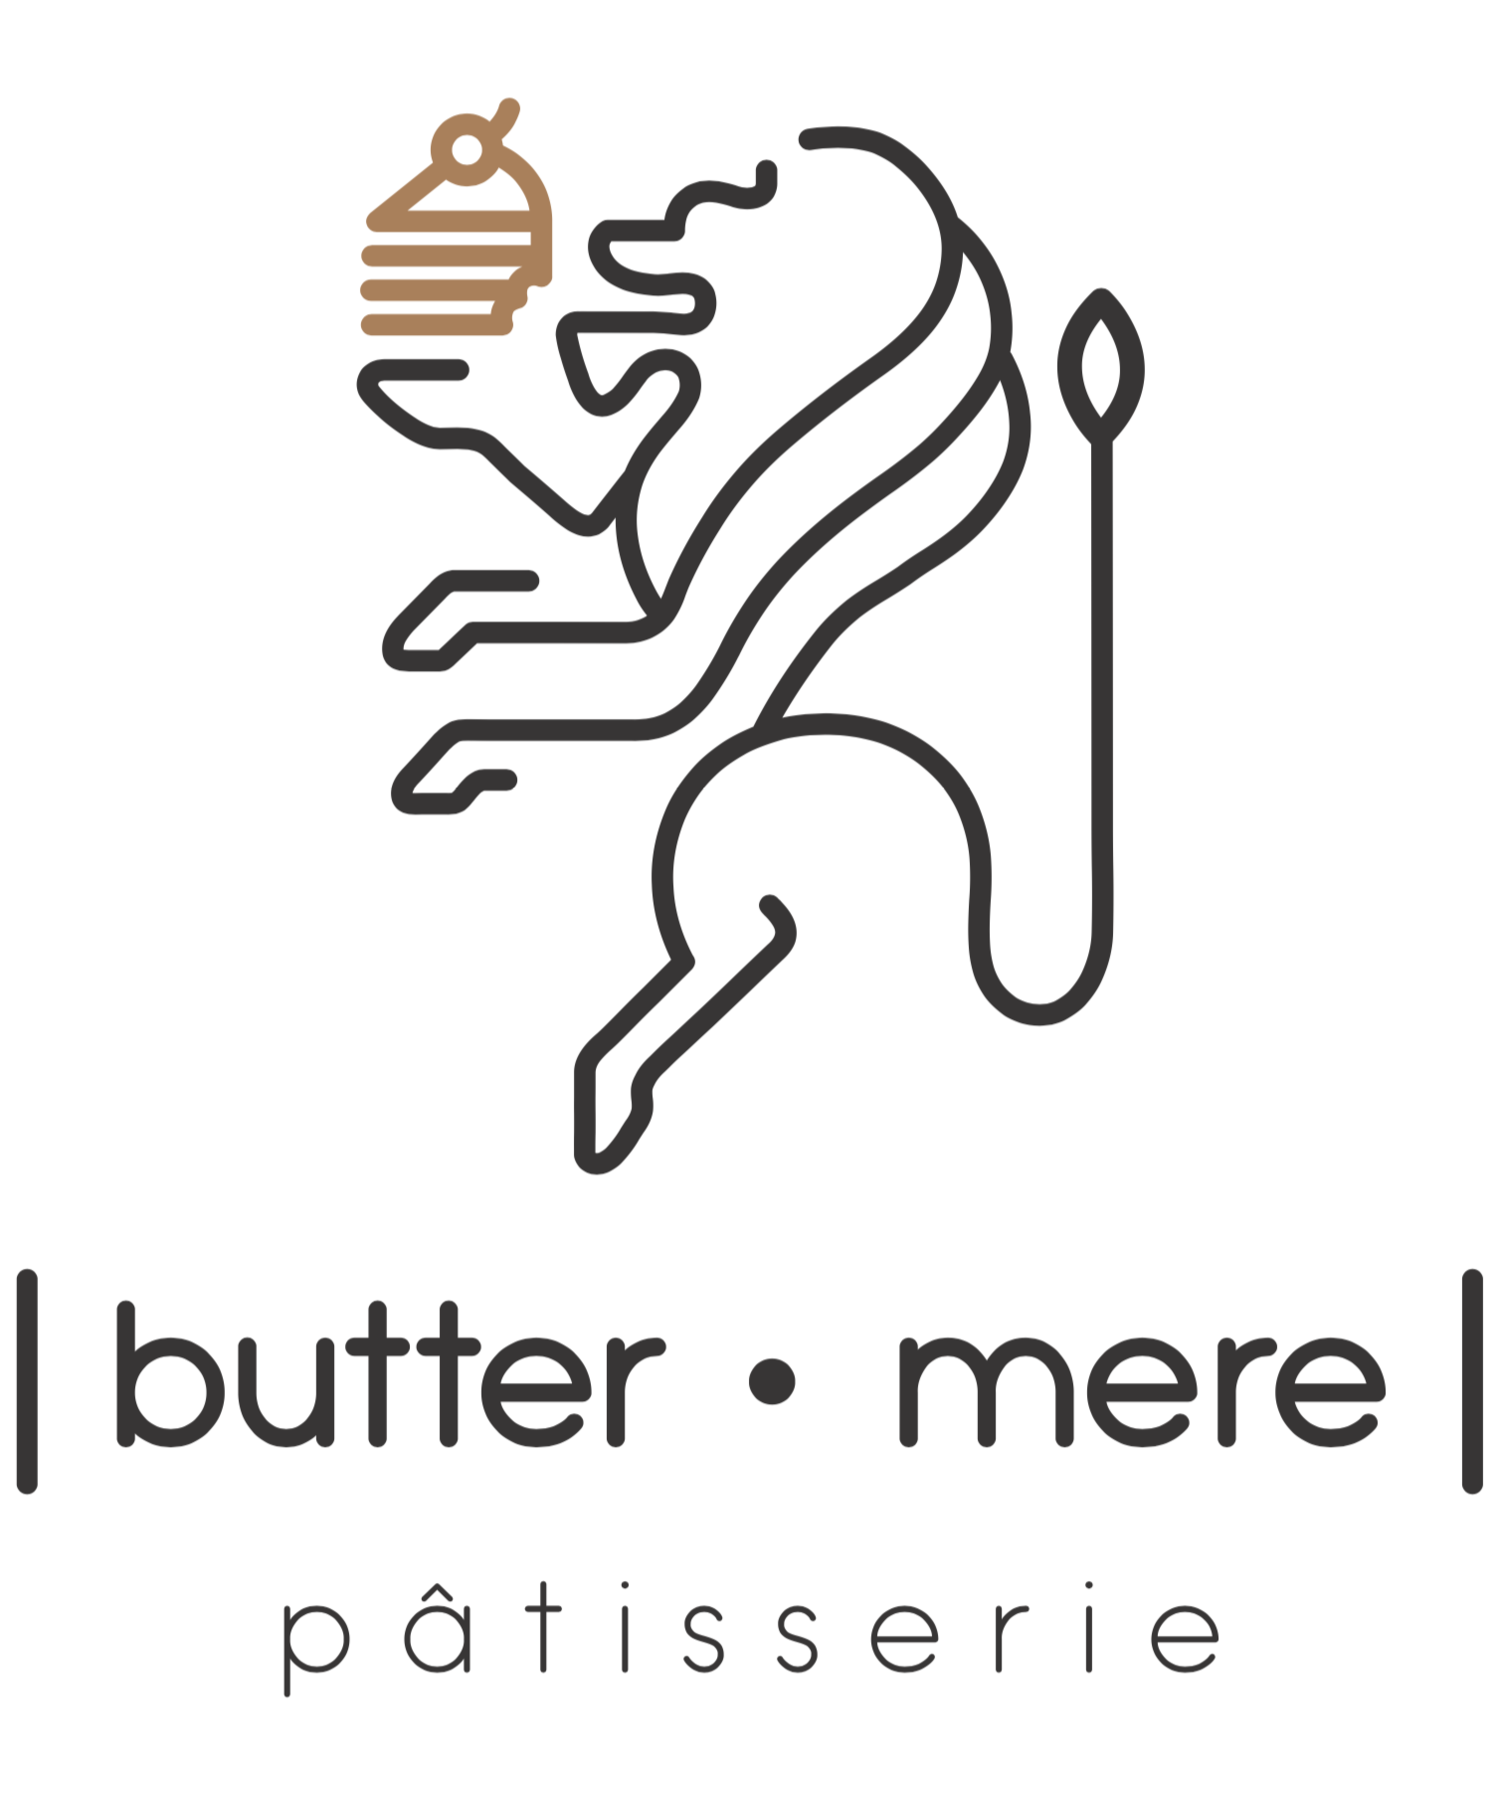 Buttermere Patisserie